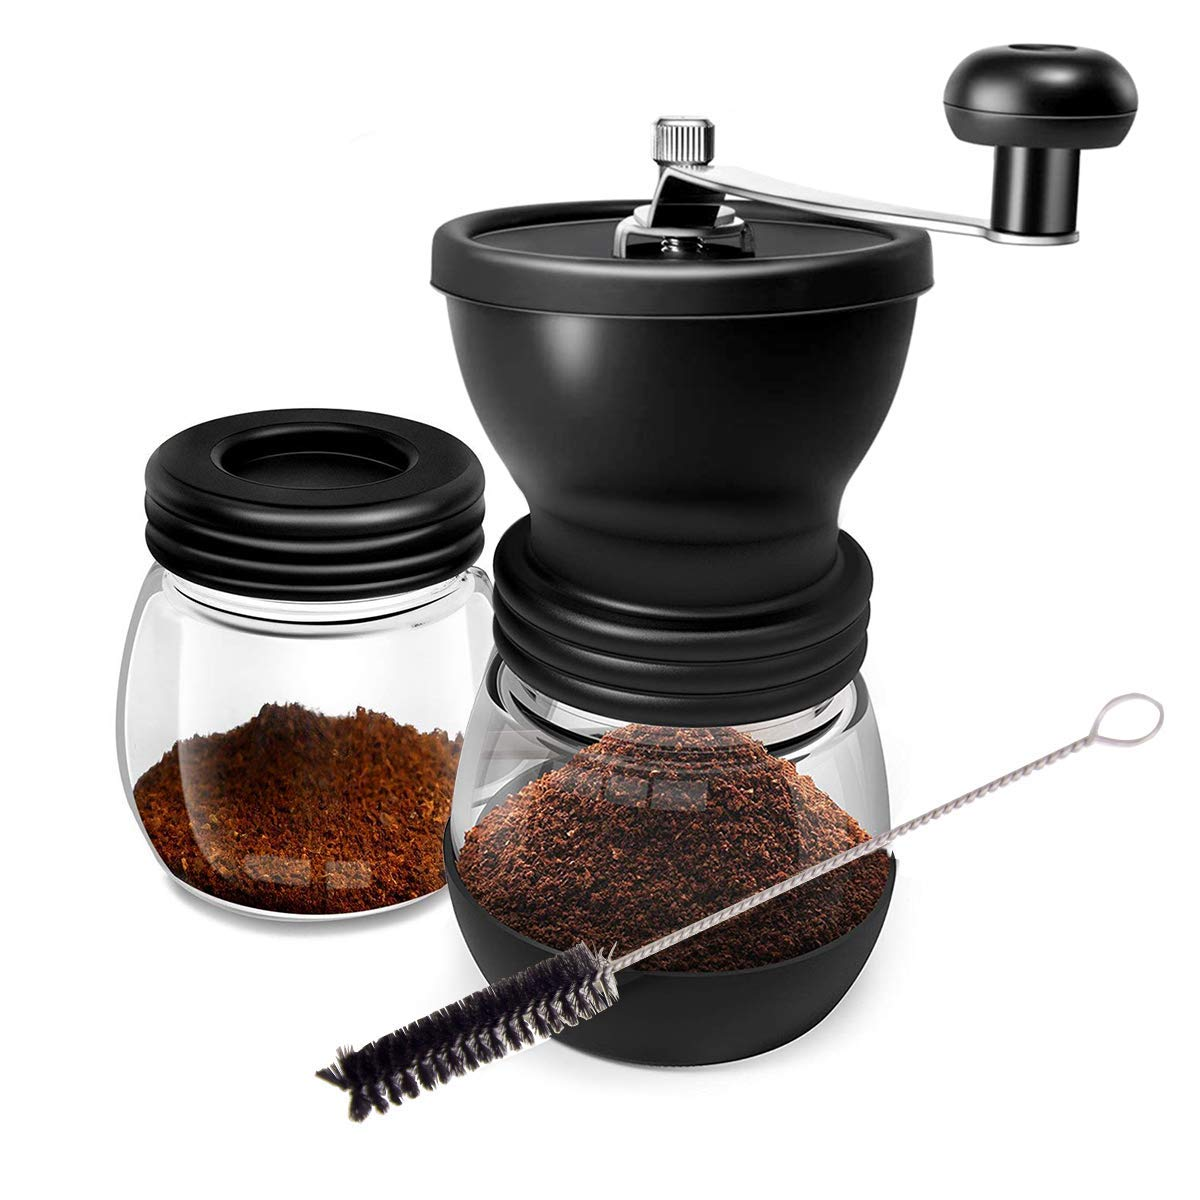 Manual Coffee Grinder Set With Two Glass Jar And Soft Brush For Beans, Stainless Steel Built To Last,Easy Cleaning, Convenient for Using,Quiet and Portable